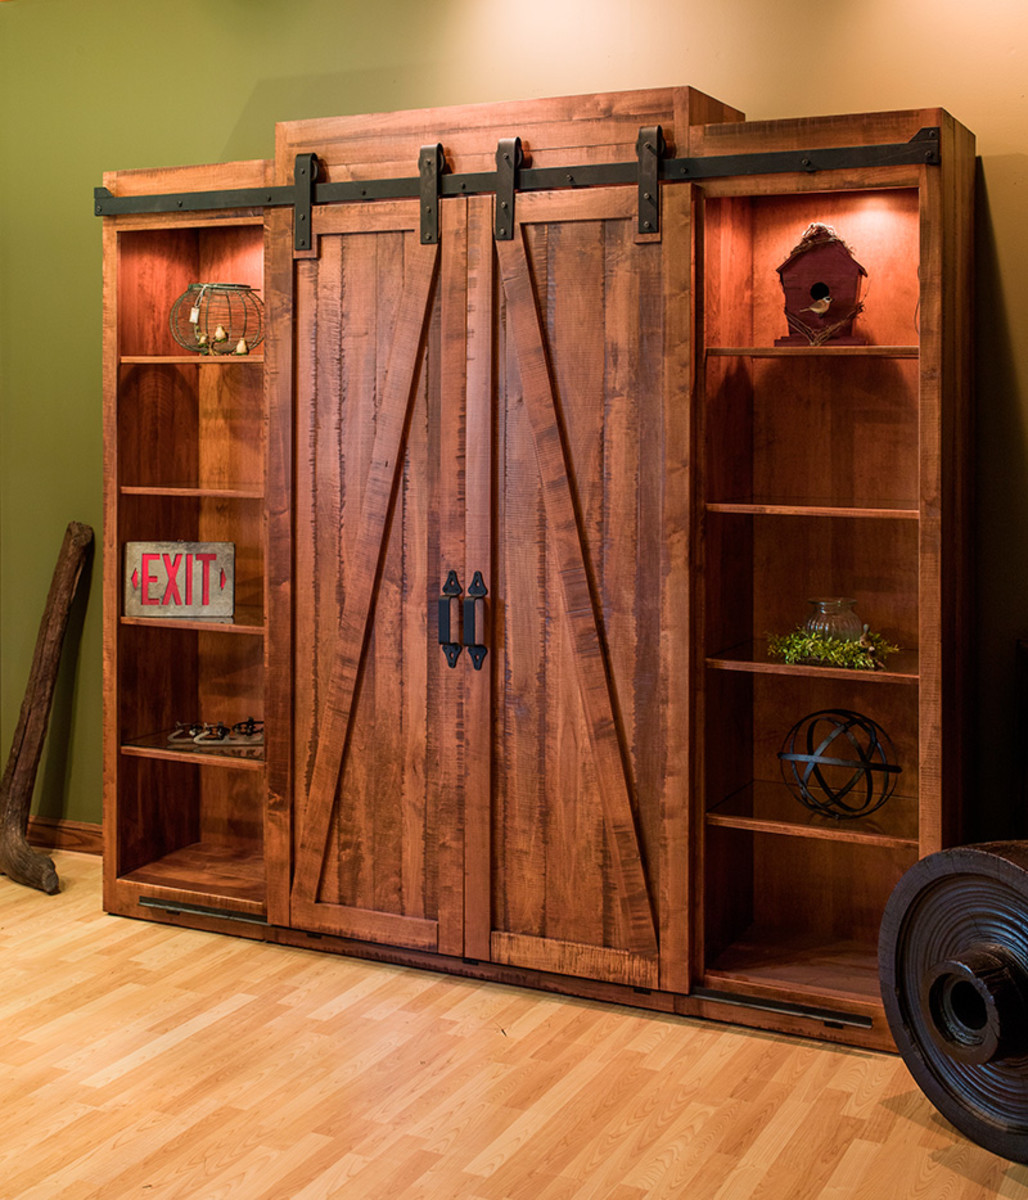 Example of using the barn door system on an entertainment center.